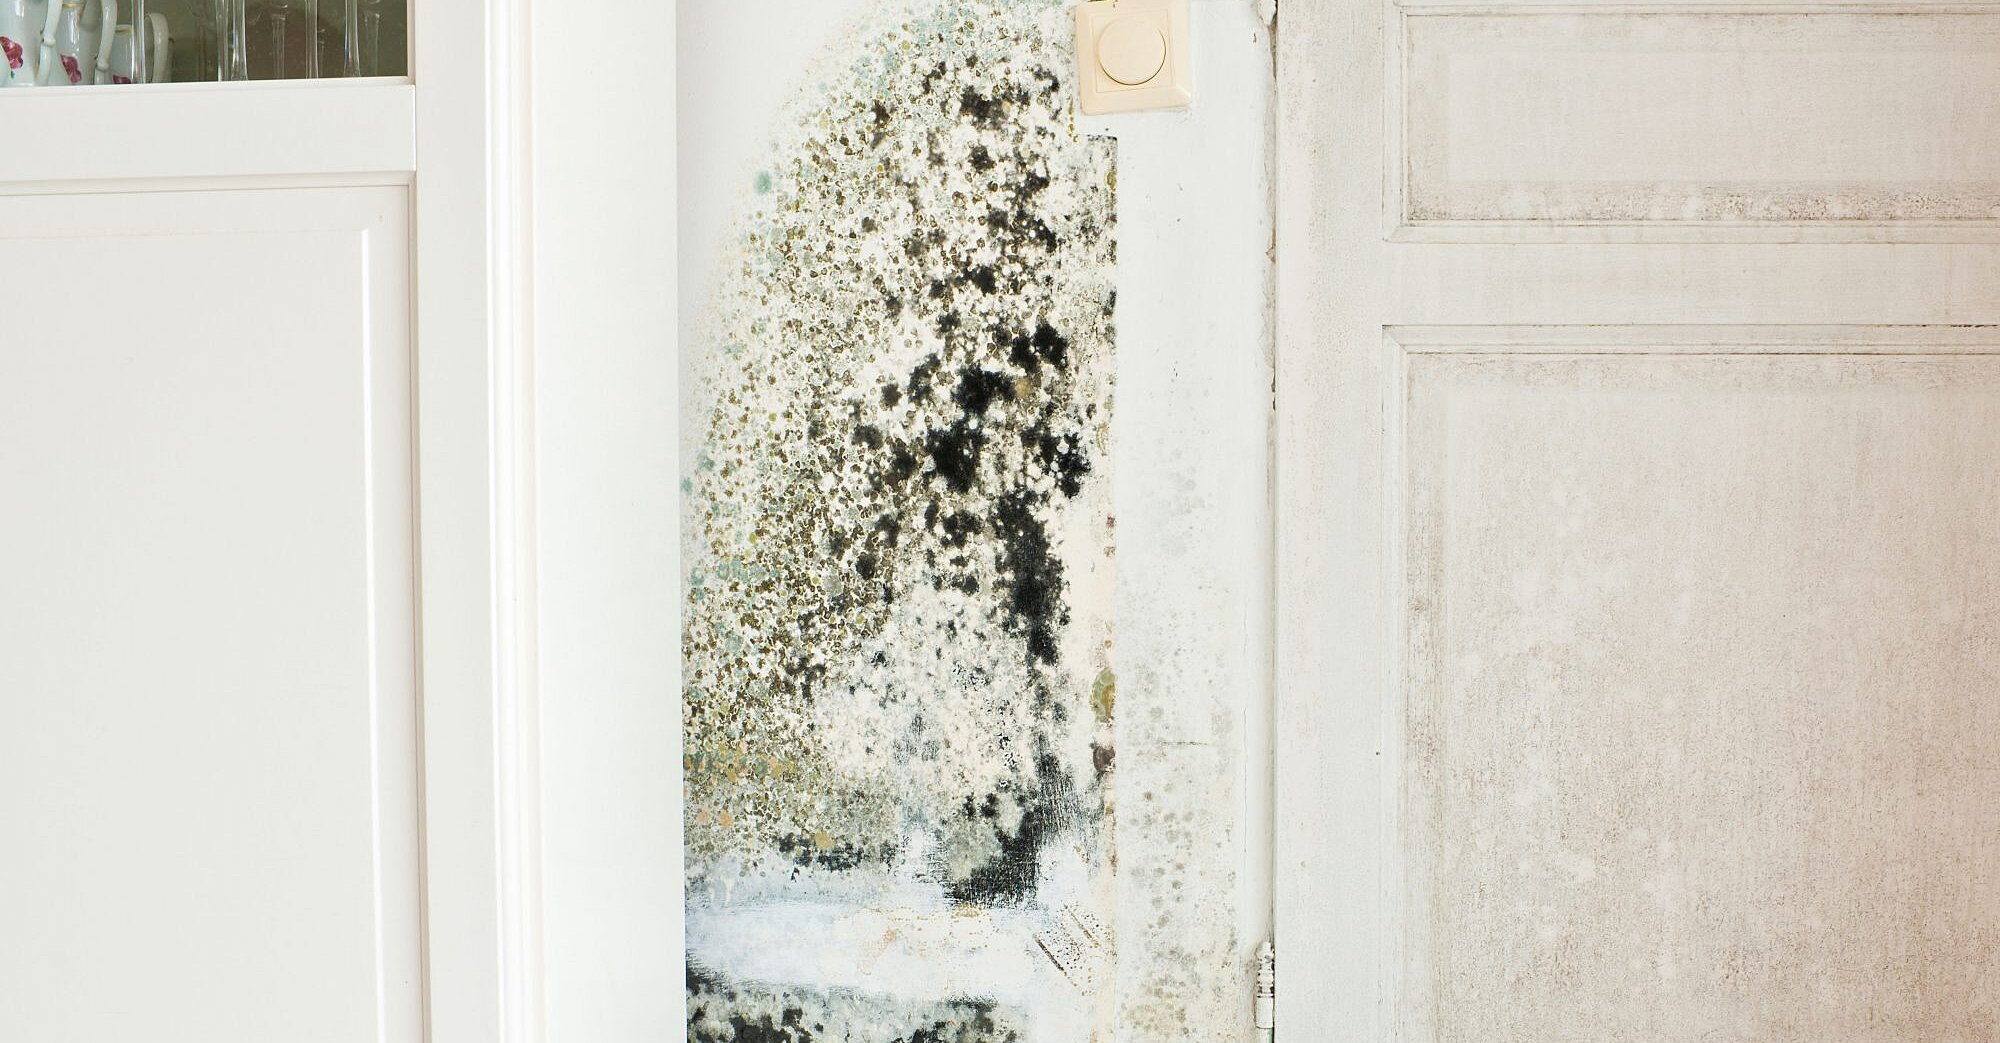 What to Do If You Find Black Mold in Your Home